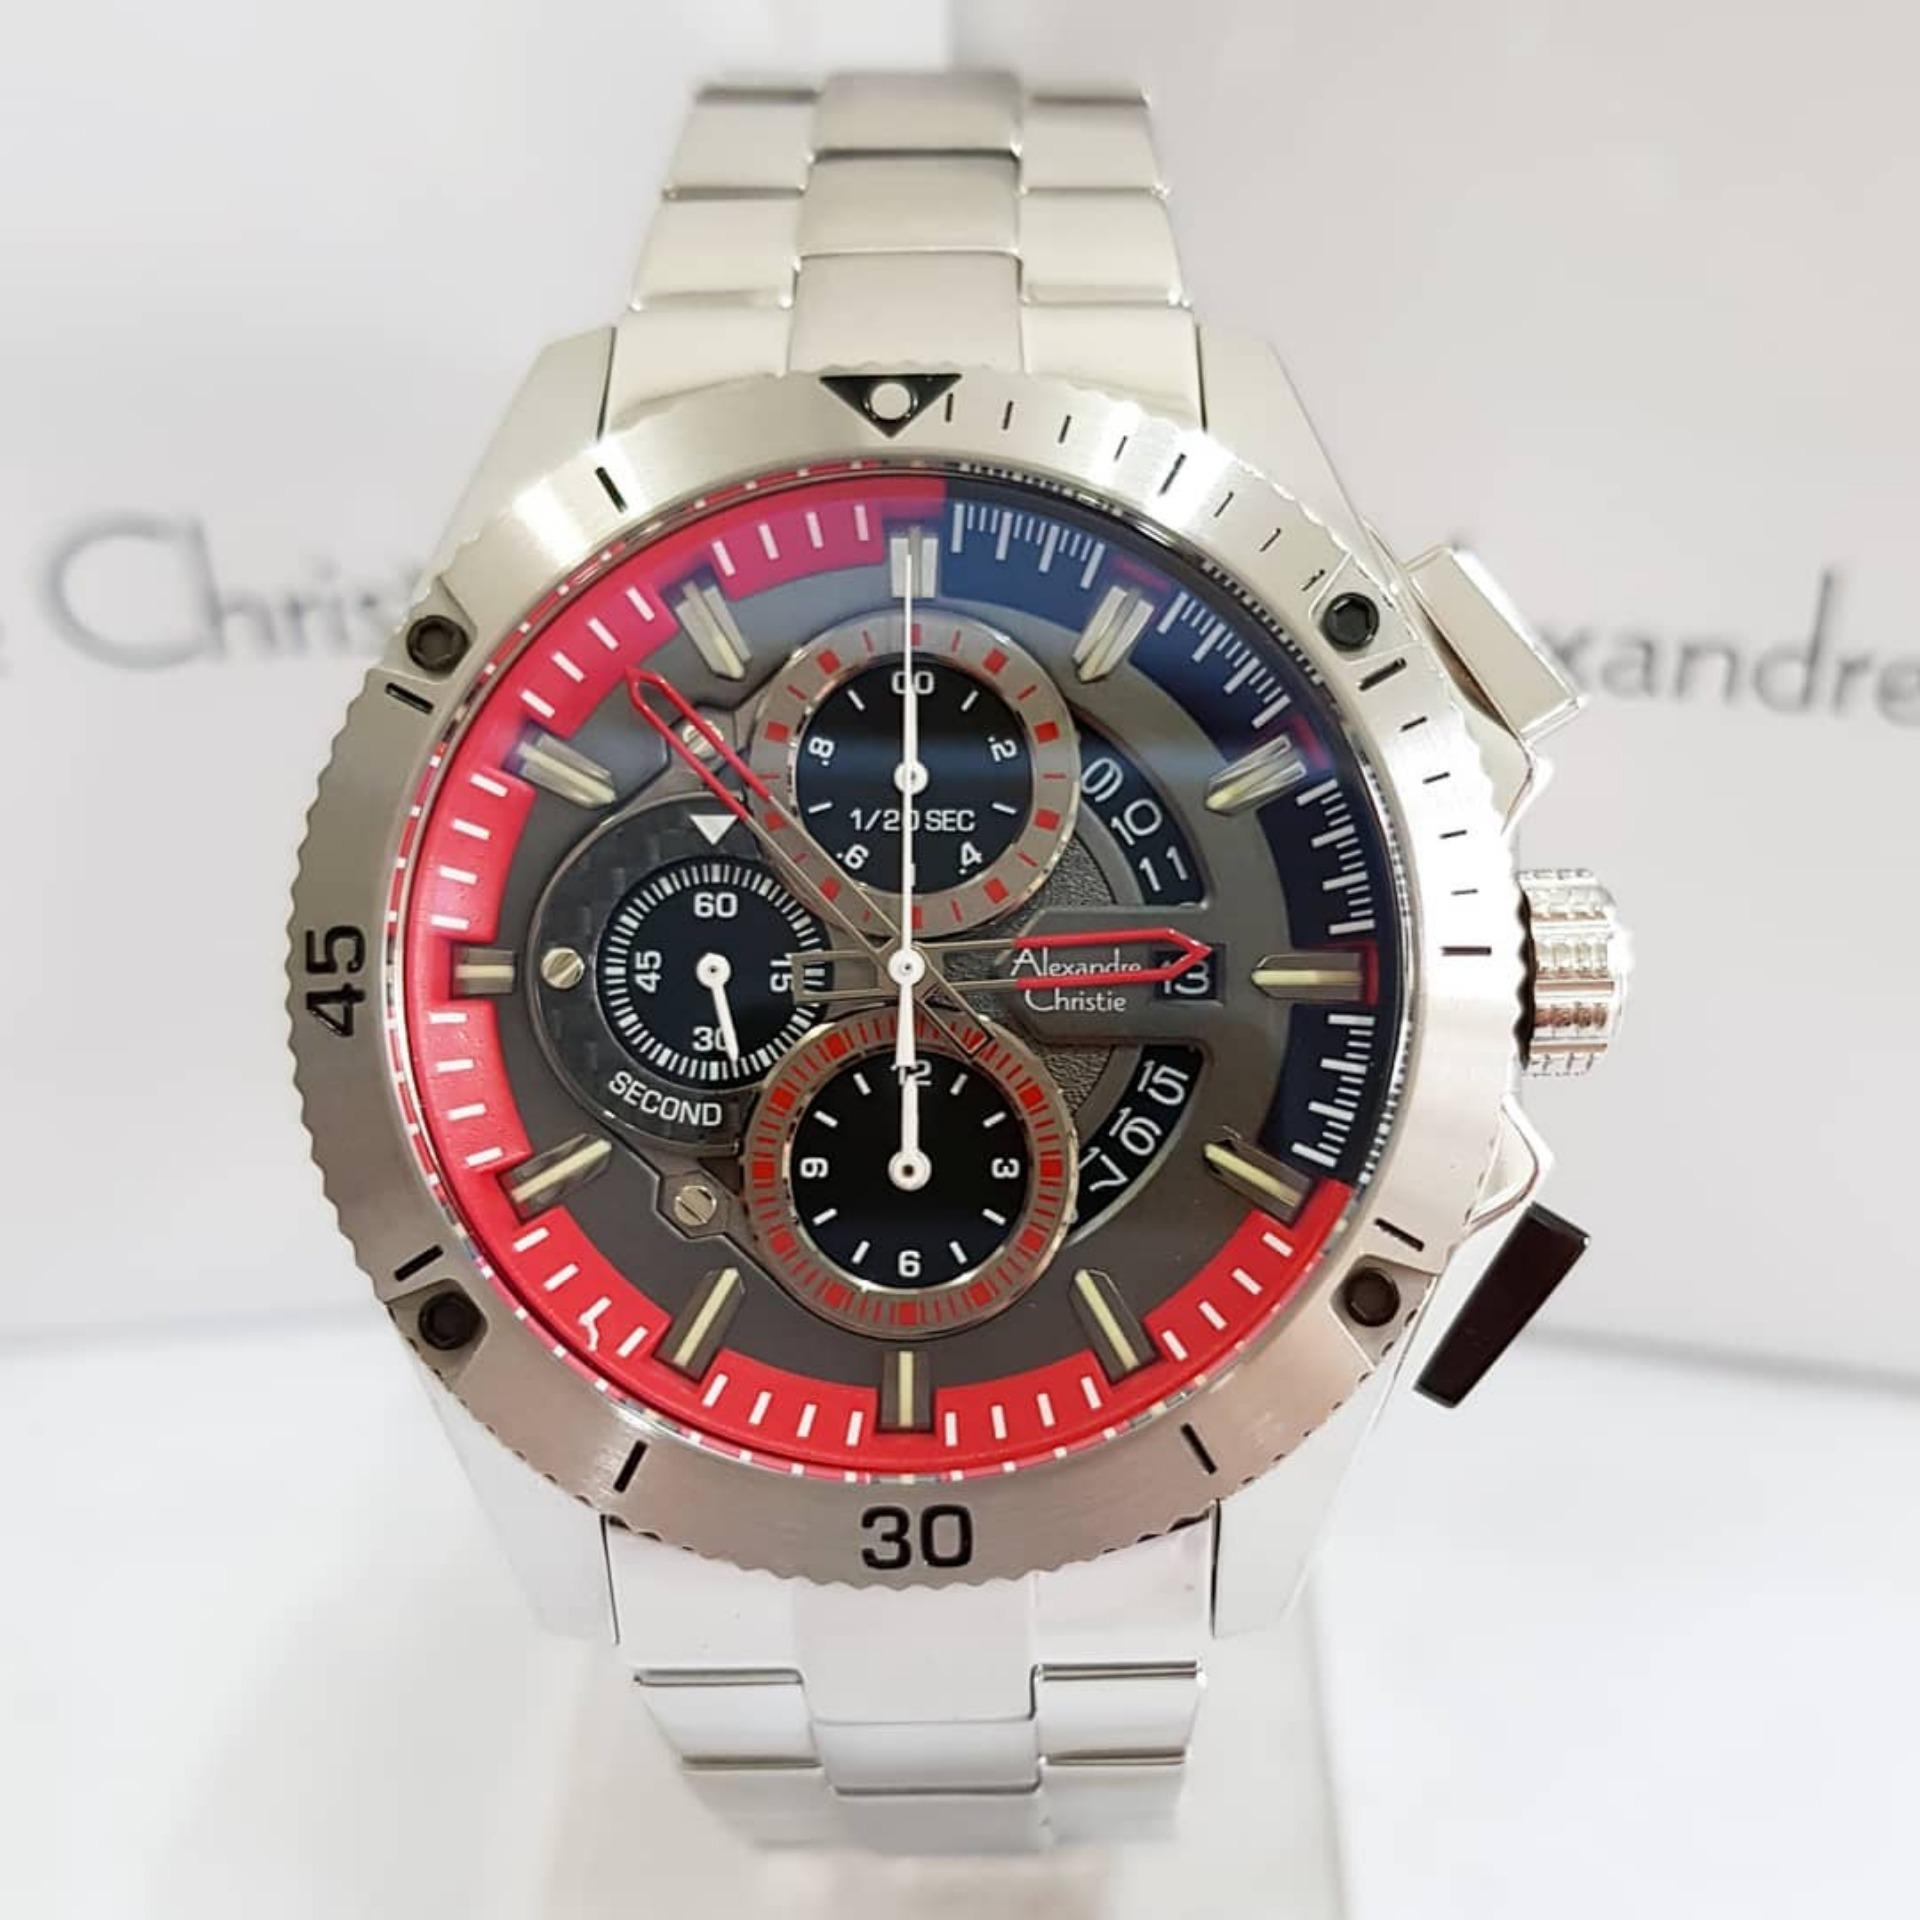 Alexandre Christie 6465M Jam Tangan Pria   Cowok Stainless Steel ee69a9f06c